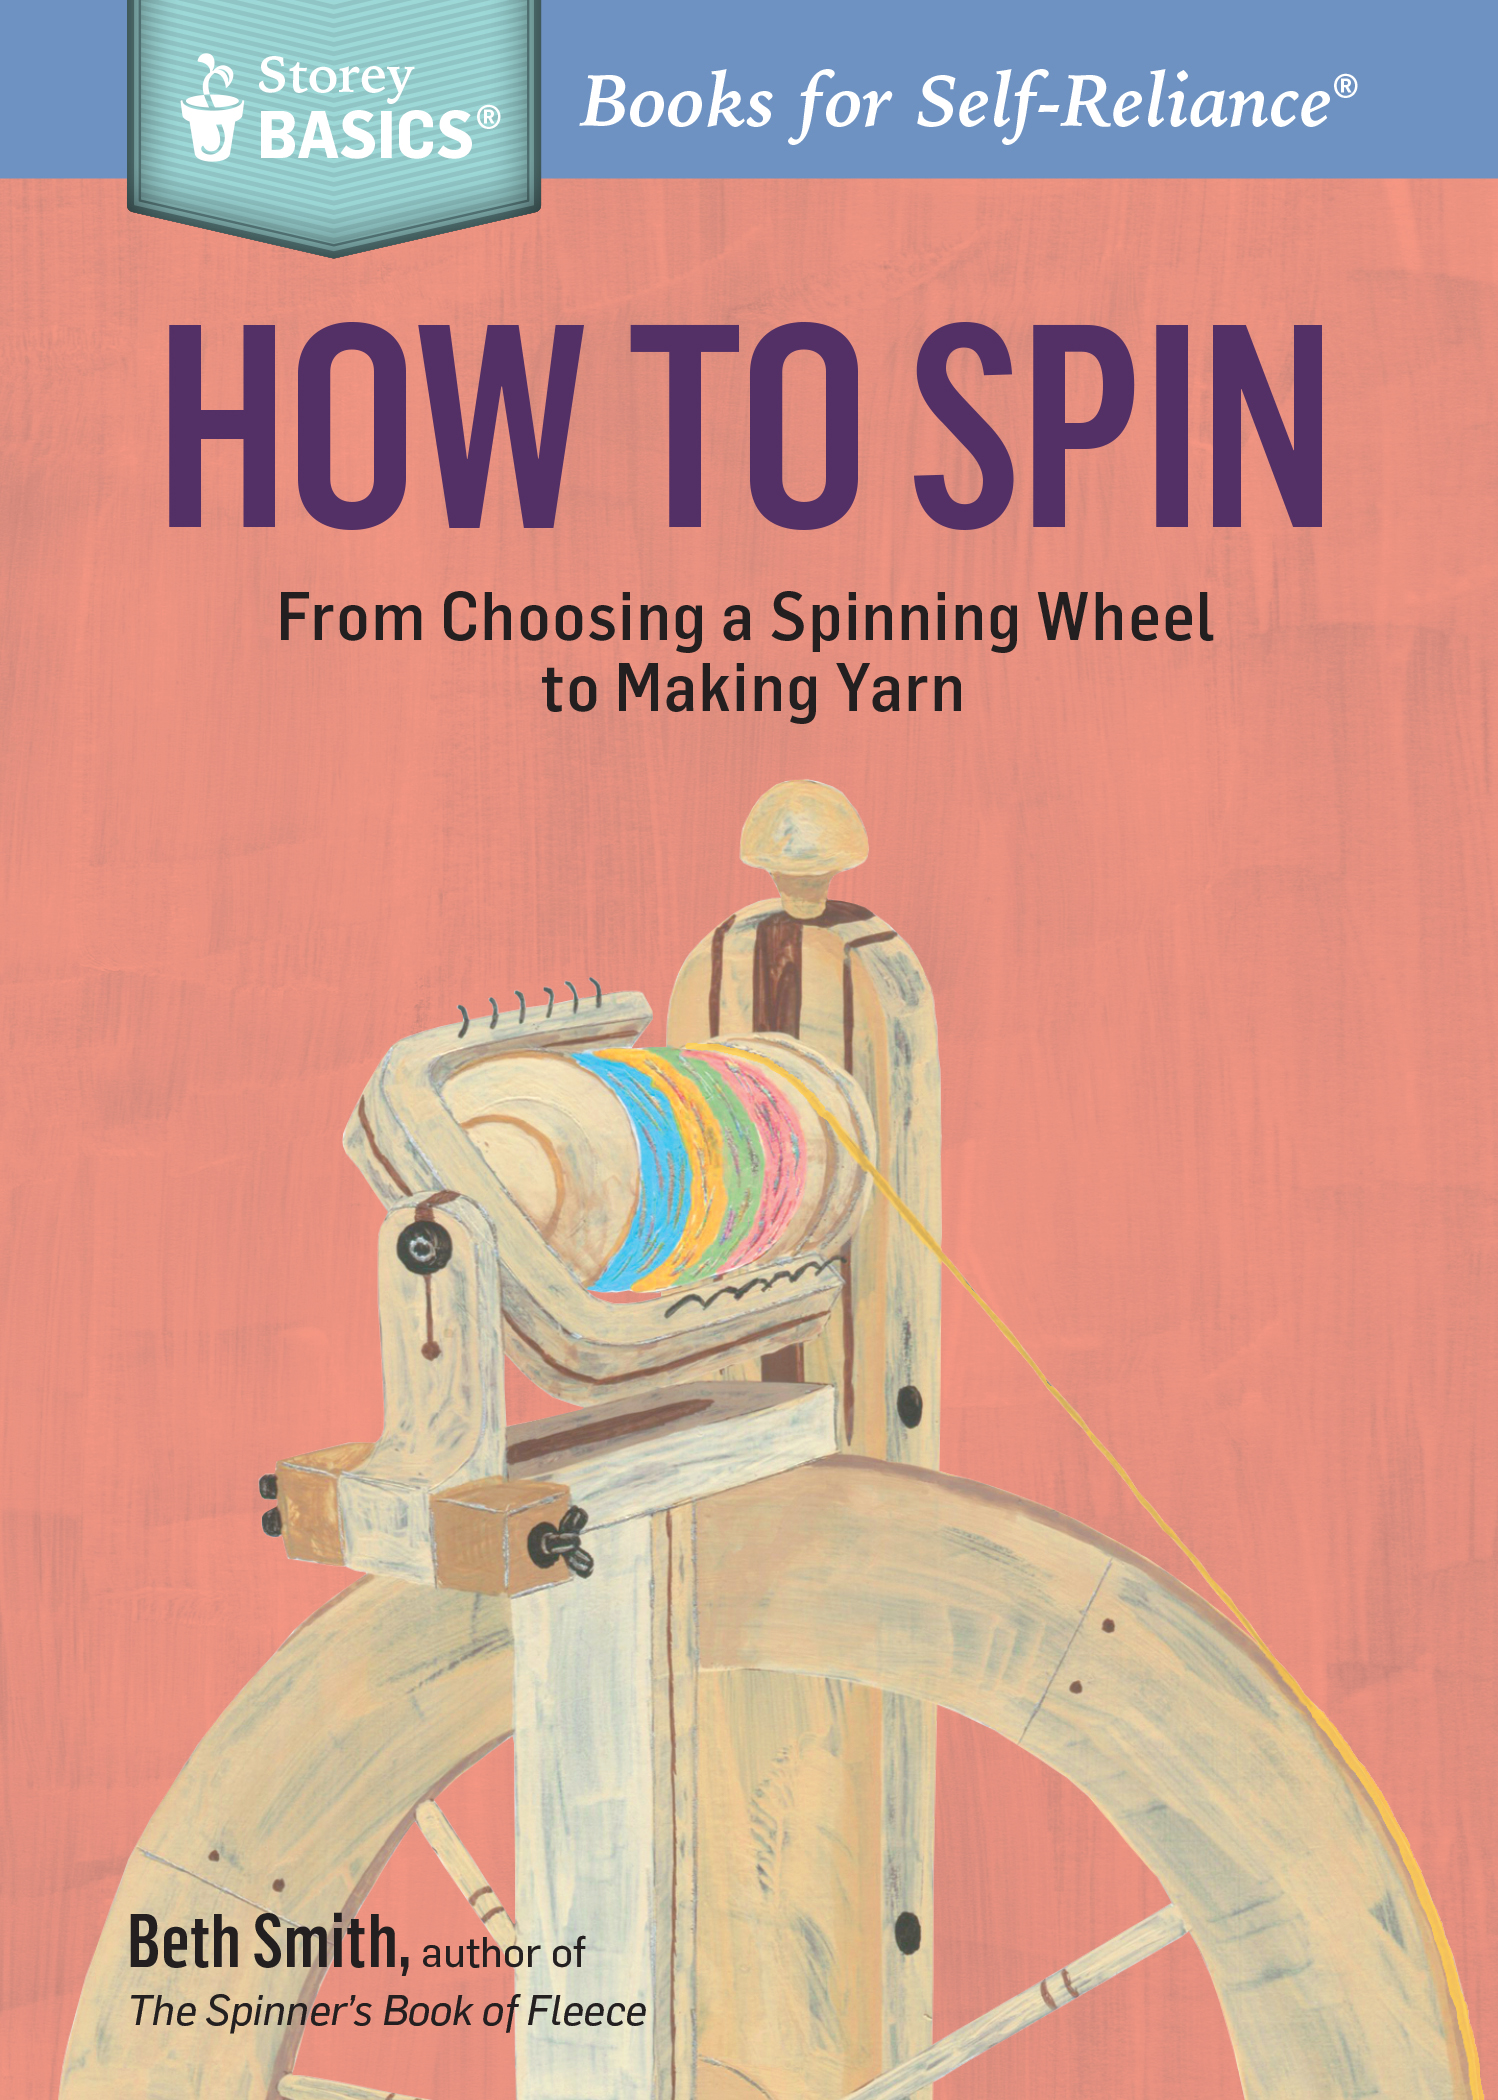 How to Spin From Choosing a Spinning Wheel to Making Yarn. A Storey BASICS® Title - Beth Smith